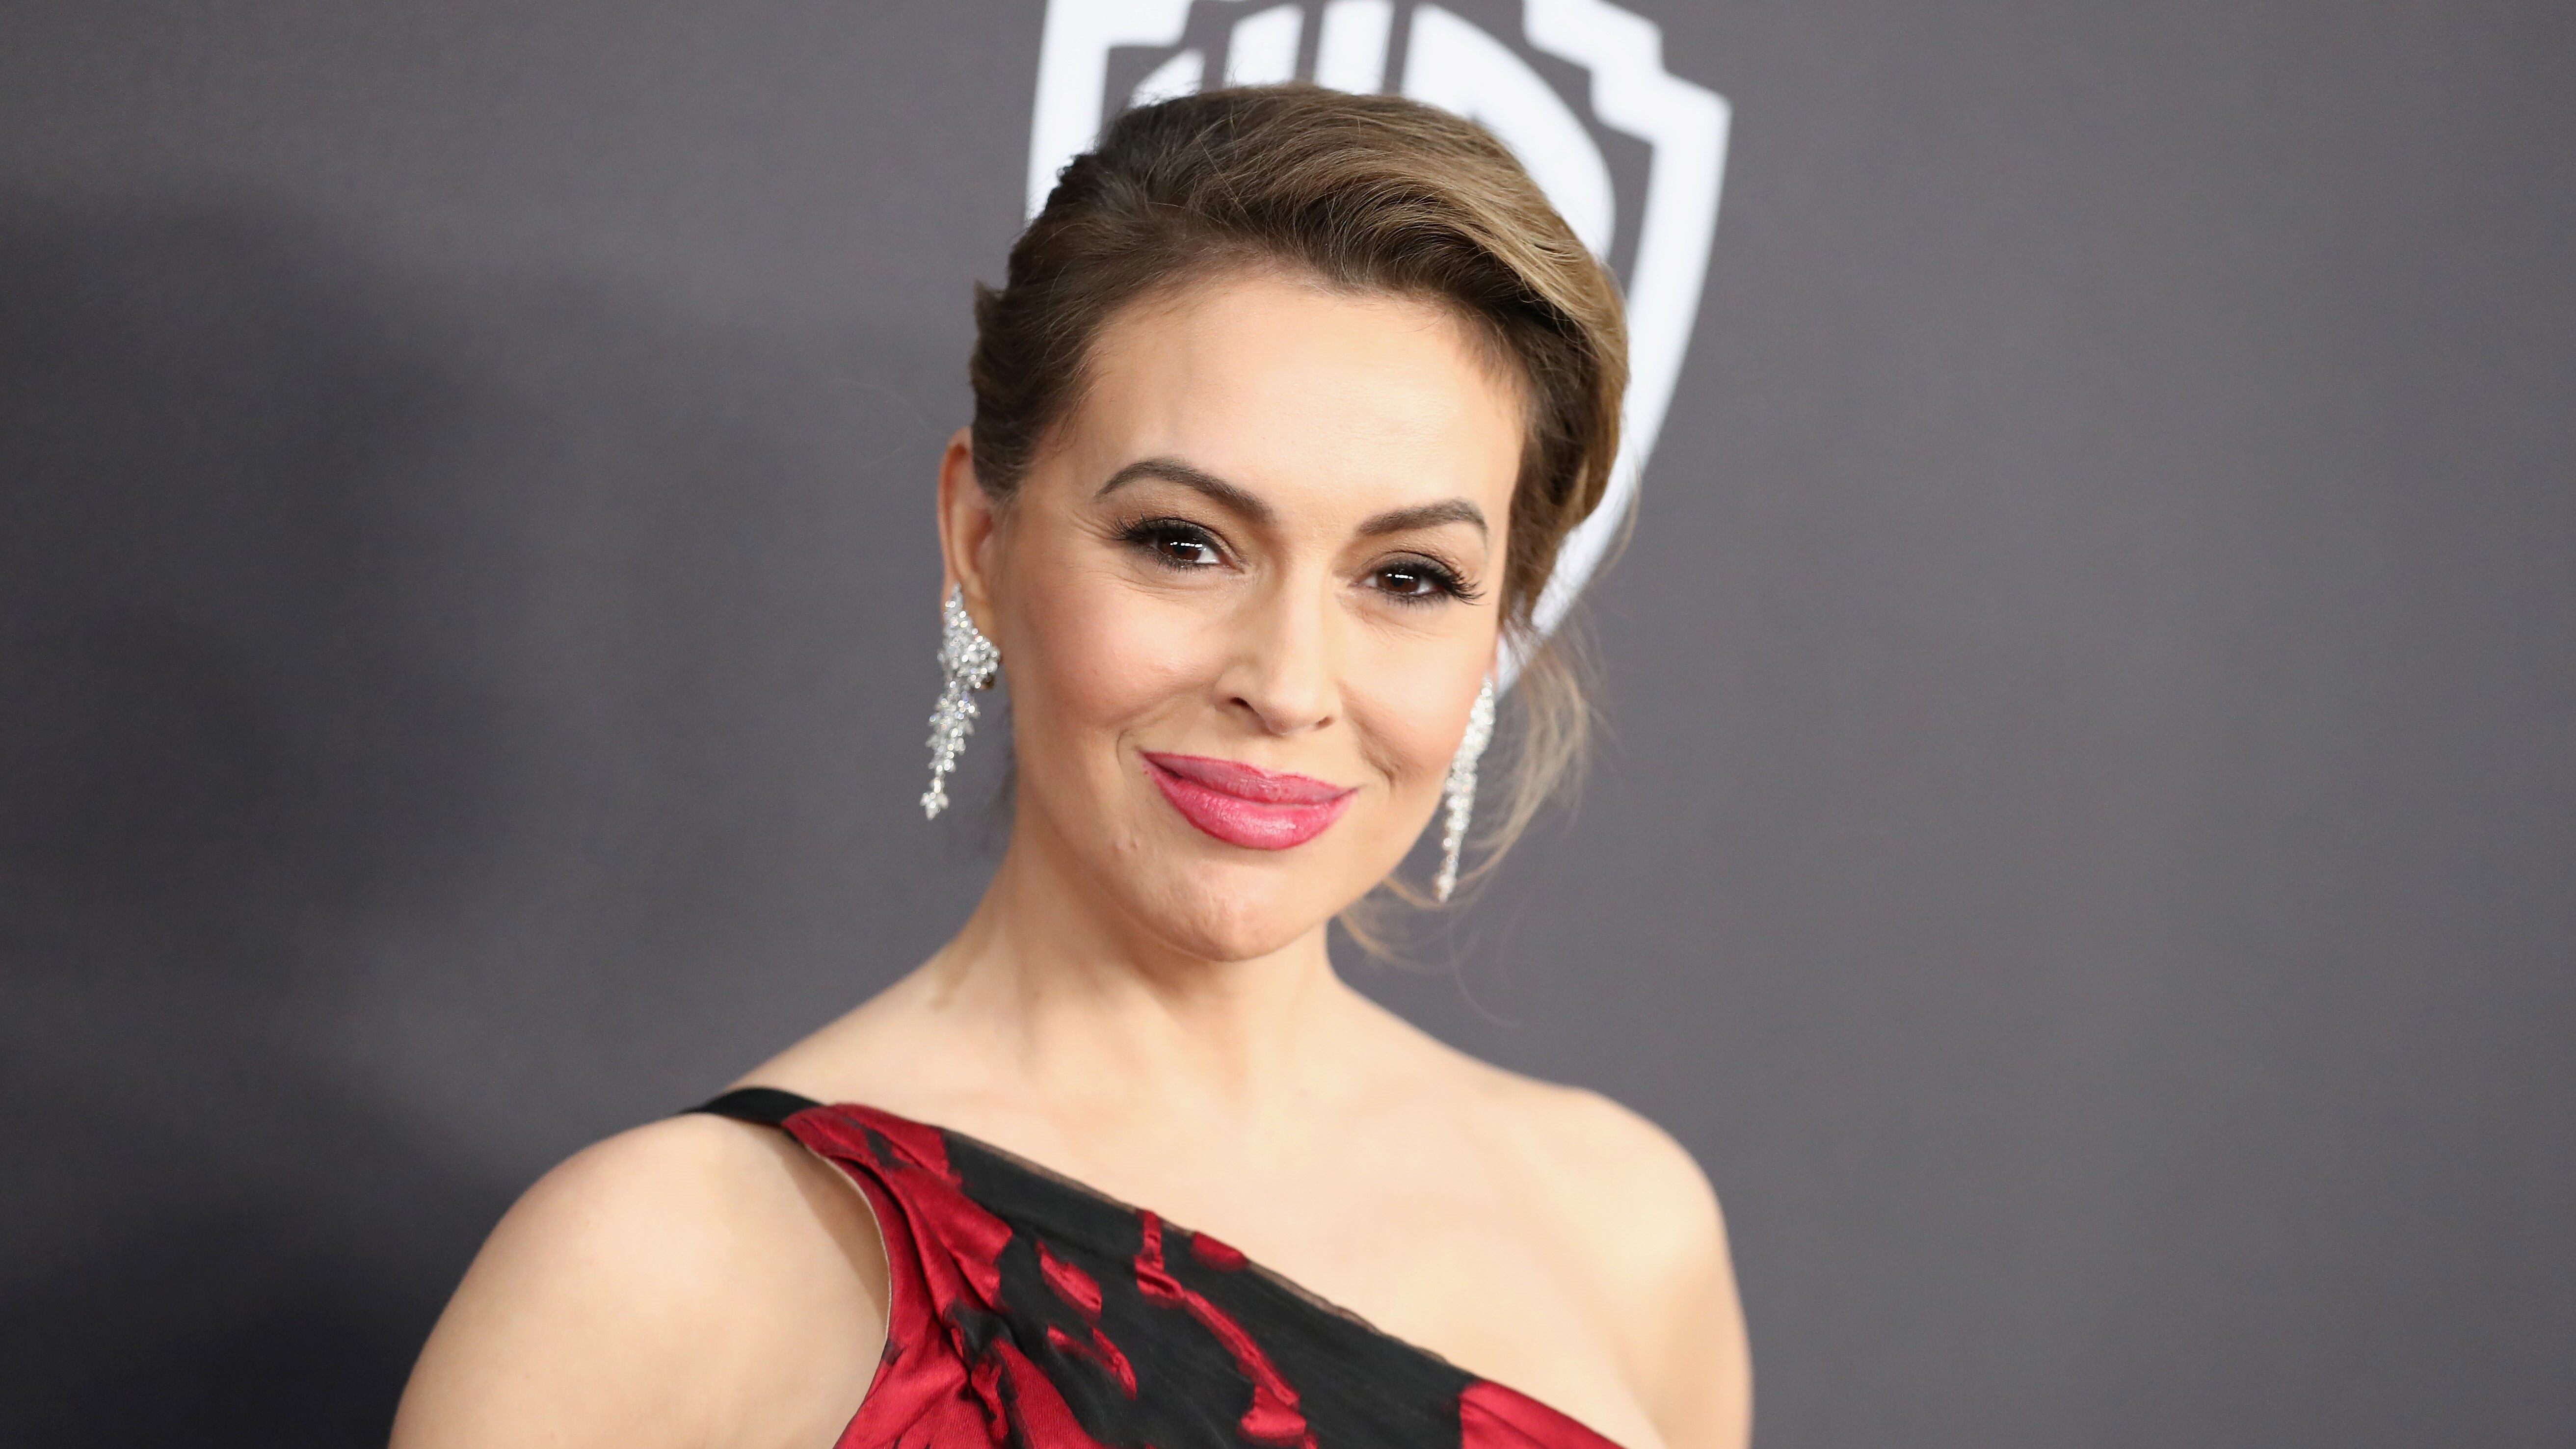 Alyssa Milano calls for 'sex strike' in response to Georgia's anti-abortion law, gets brutally mocked